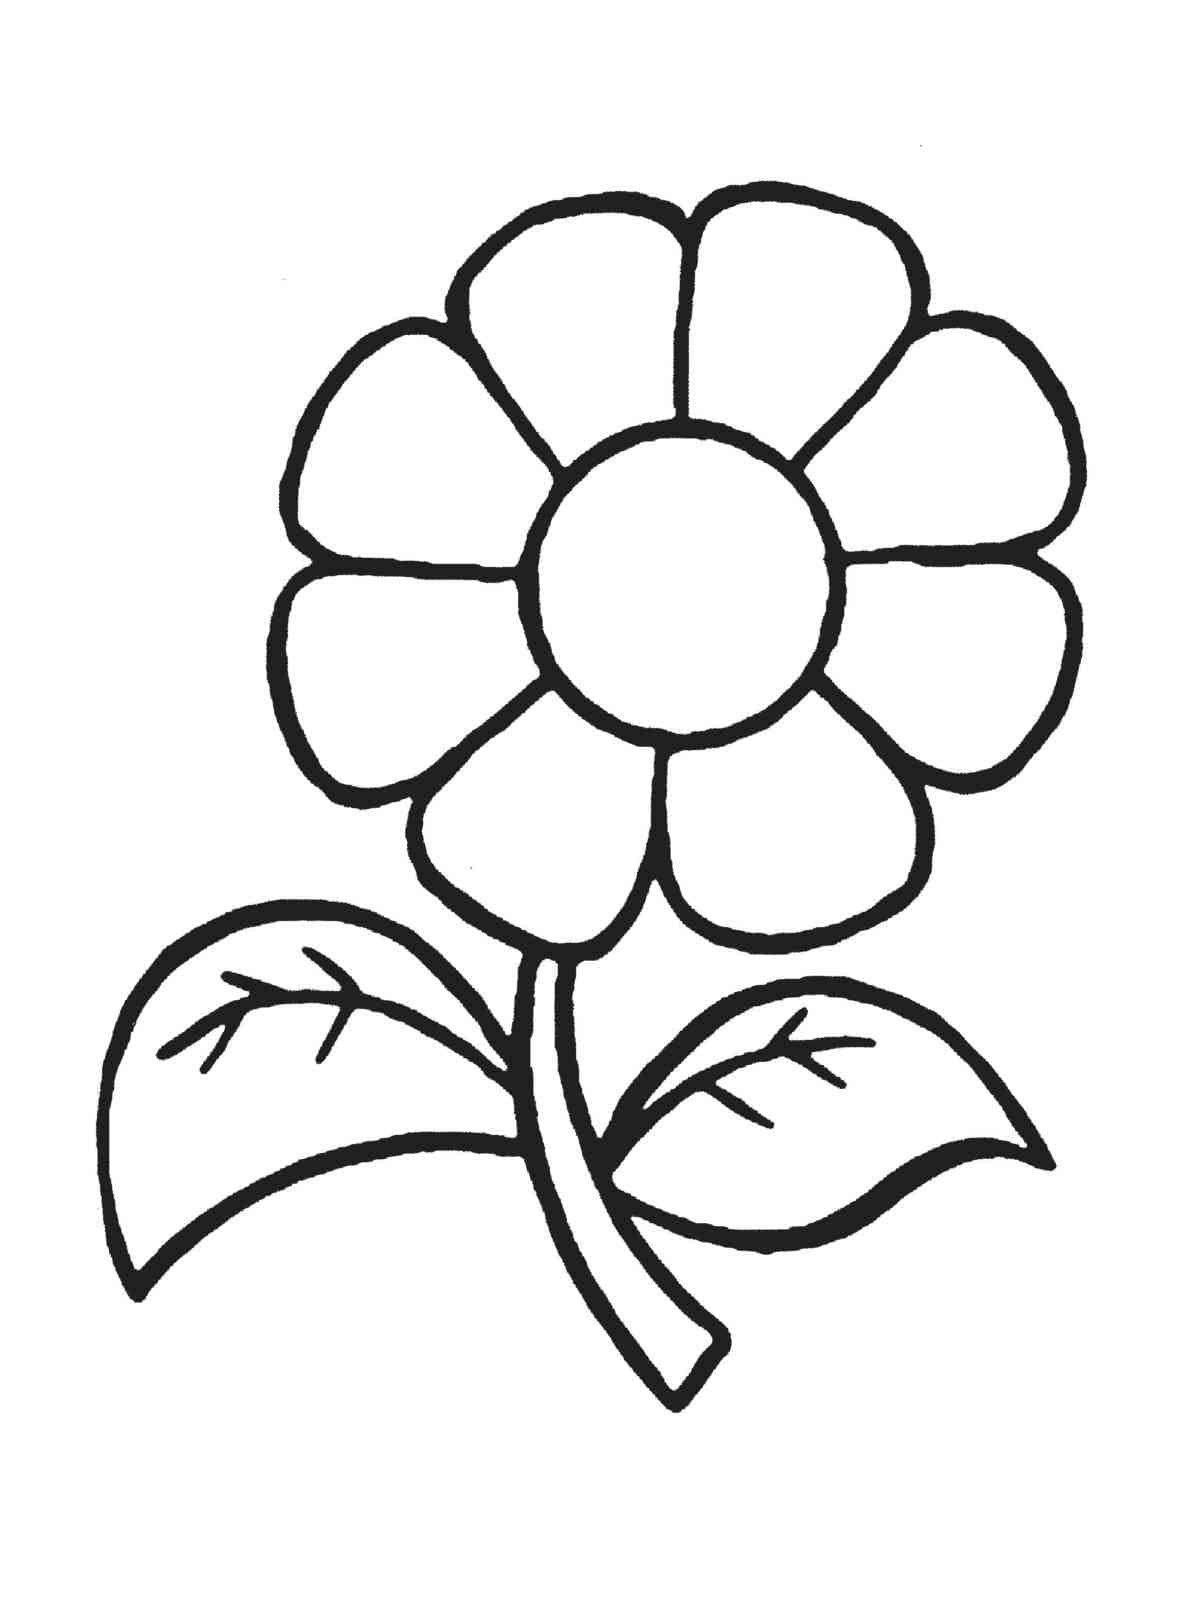 Coloring Games For 3 Year Olds Coloring Pages For 2 To 3 Year Old Kids Download Them Or Flower Coloring Pages Spring Coloring Pages Easy Coloring Pages